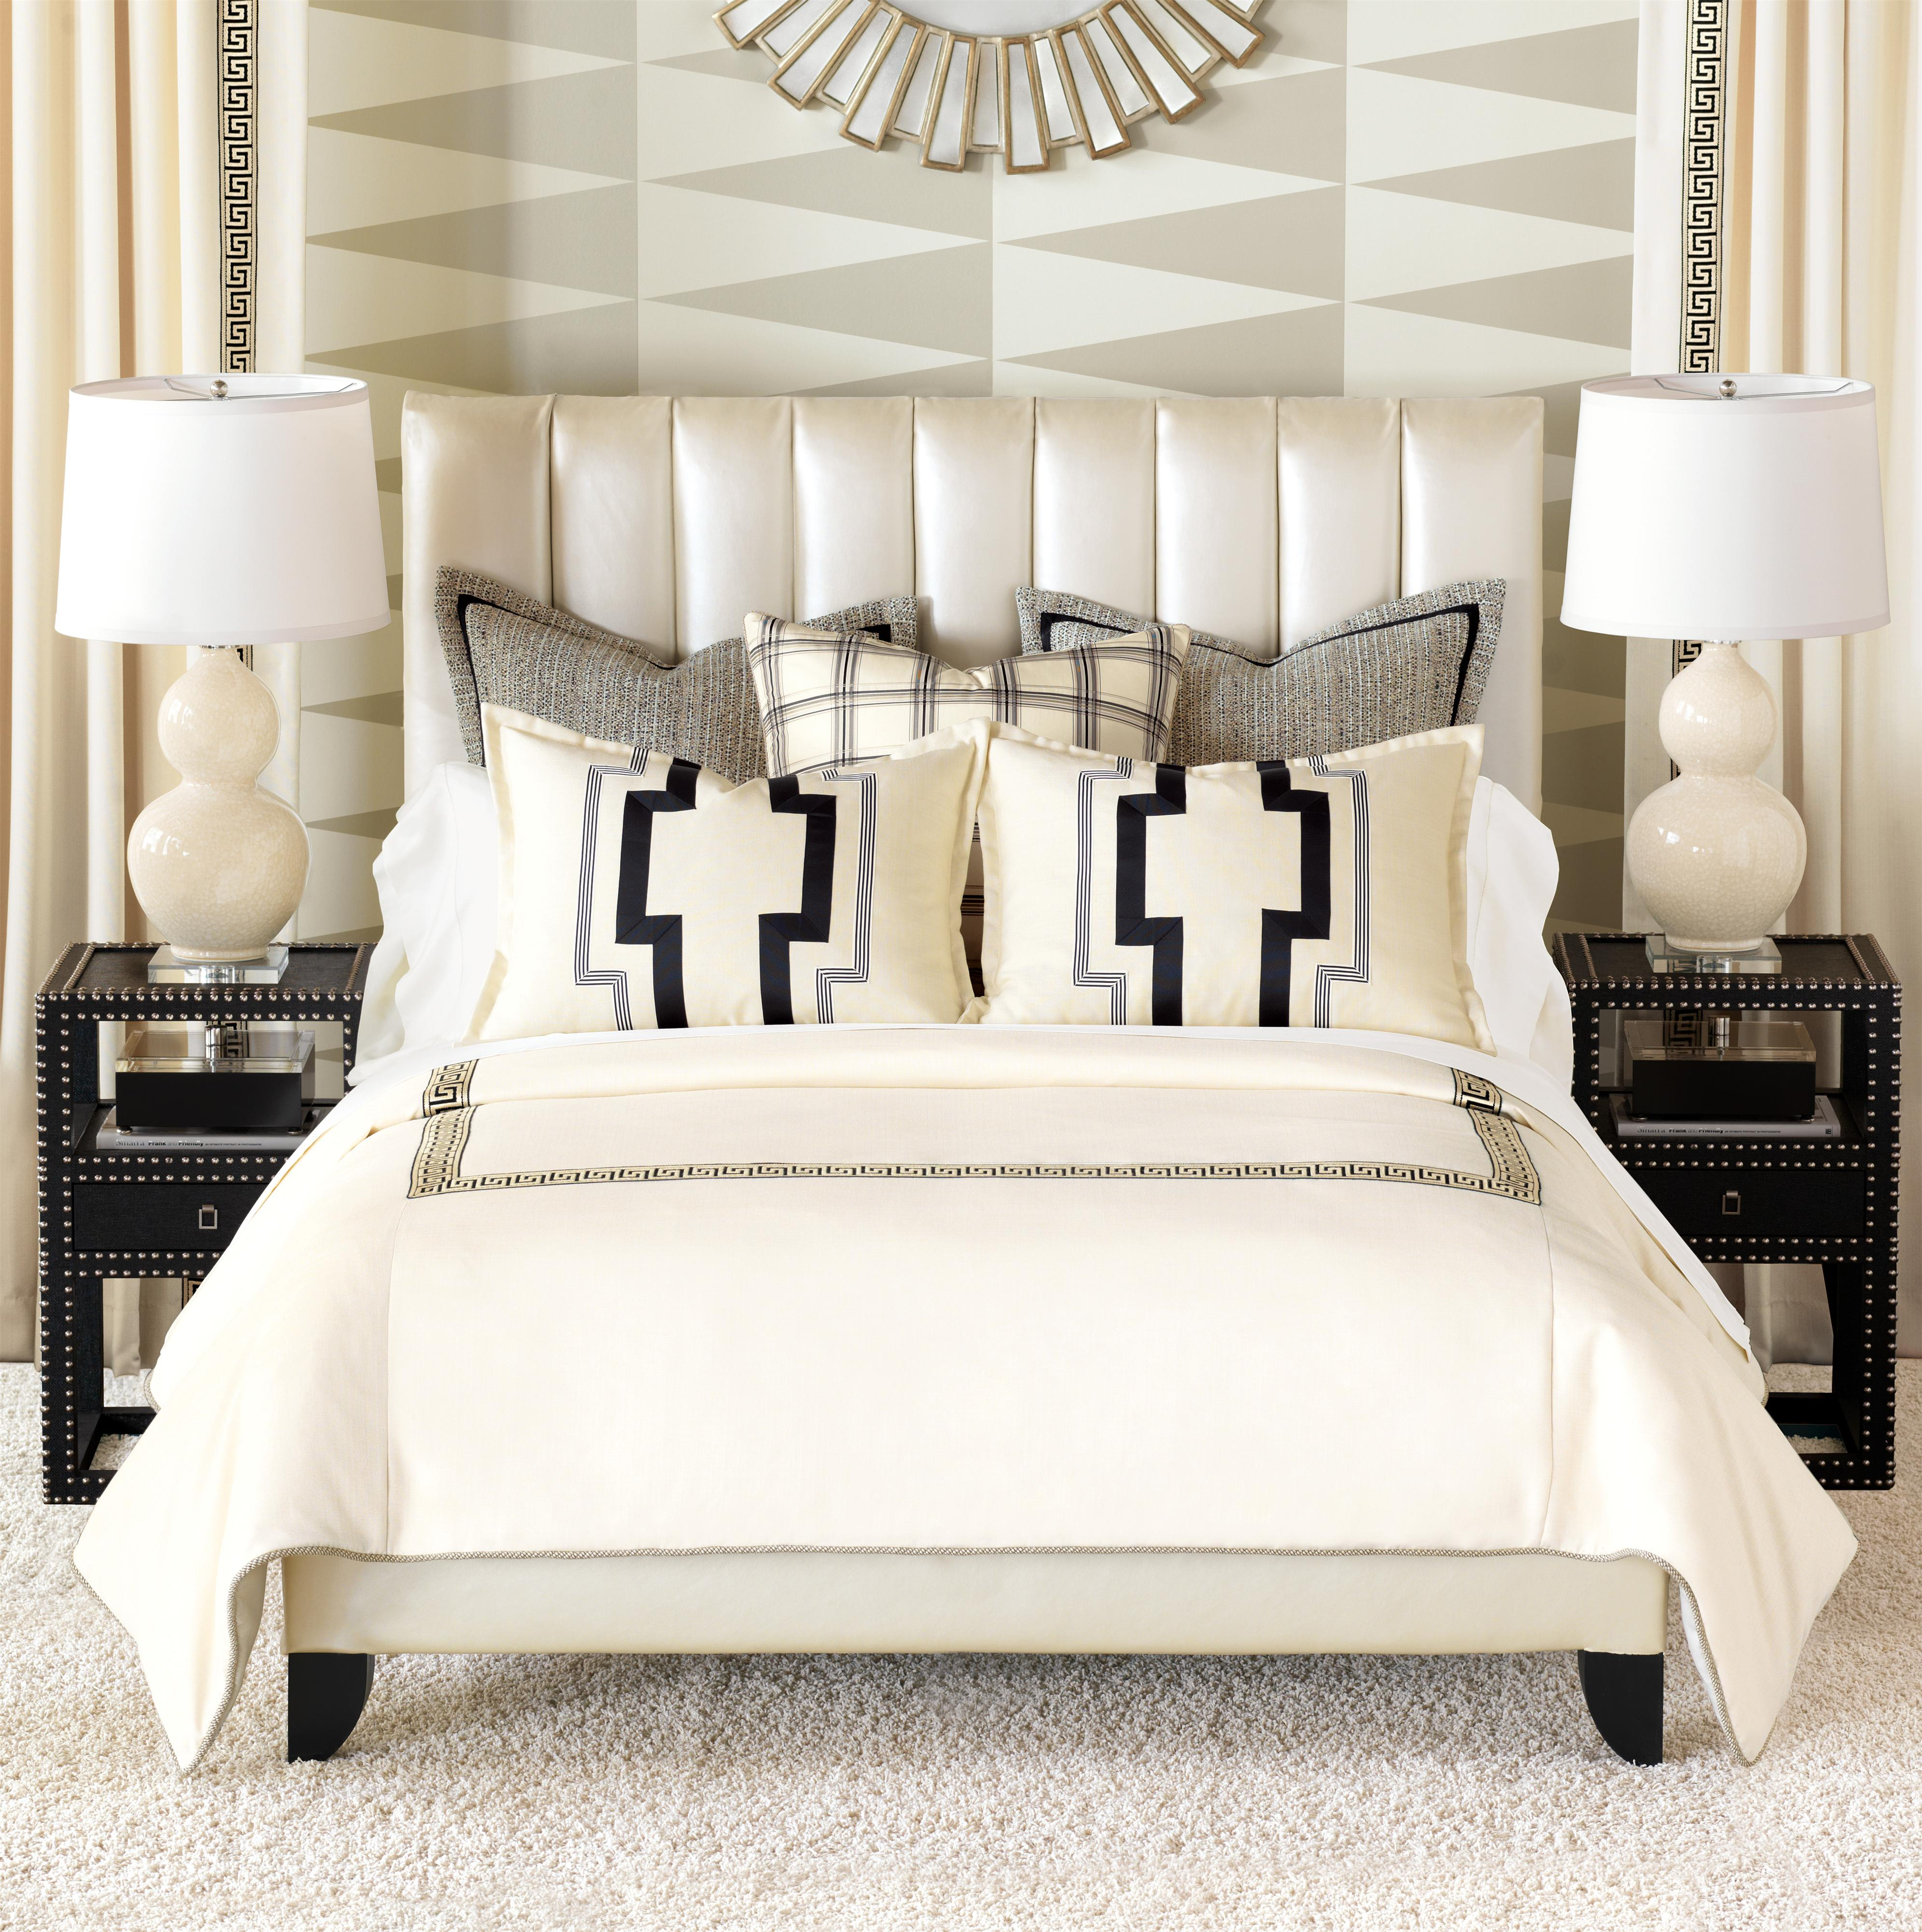 Abernathy Full Bedset by Eastern Accents at Alison Craig Home Furnishings